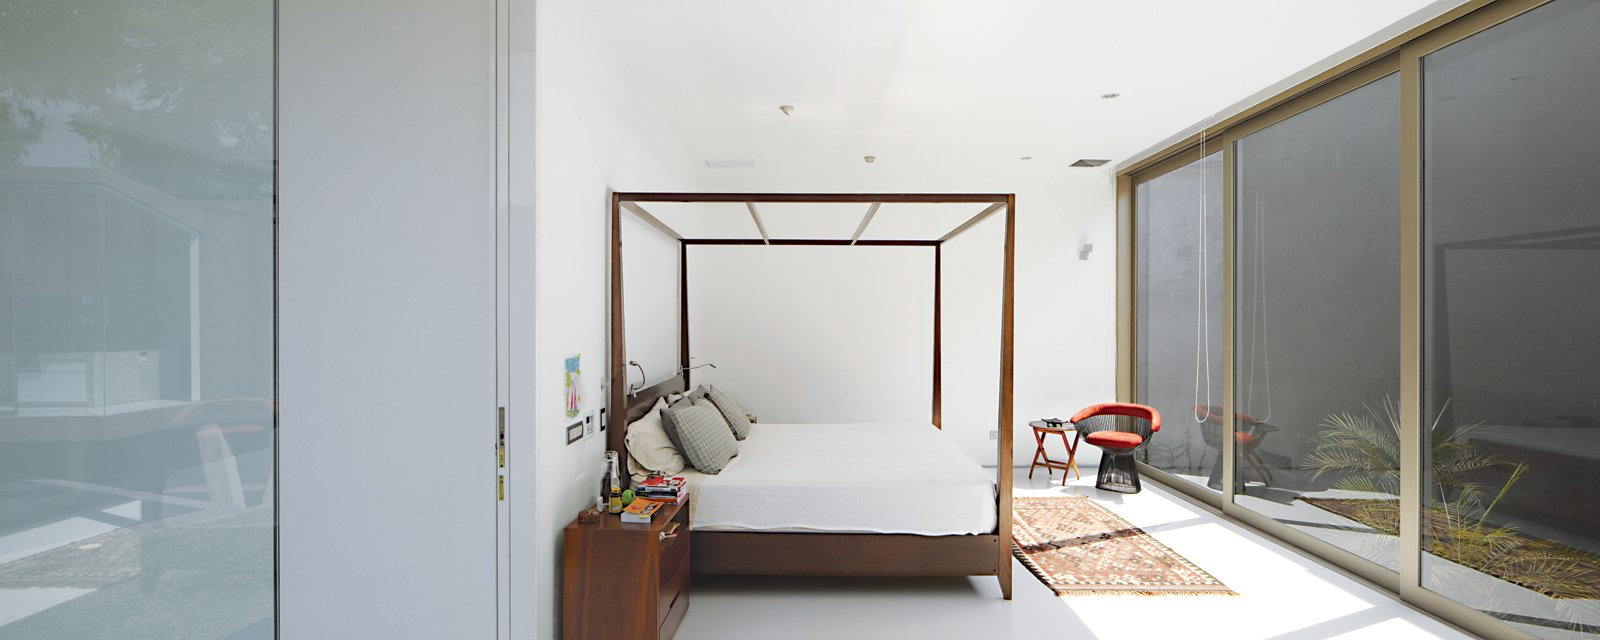 In the master bedroom is a four-poster bed by Javier Rubio and a vintage Warren Platner chair. Tagged: Bedroom, Bed, Dresser, and Chair.  Photo 4 of 13 in A Modern Concrete Home in Peru